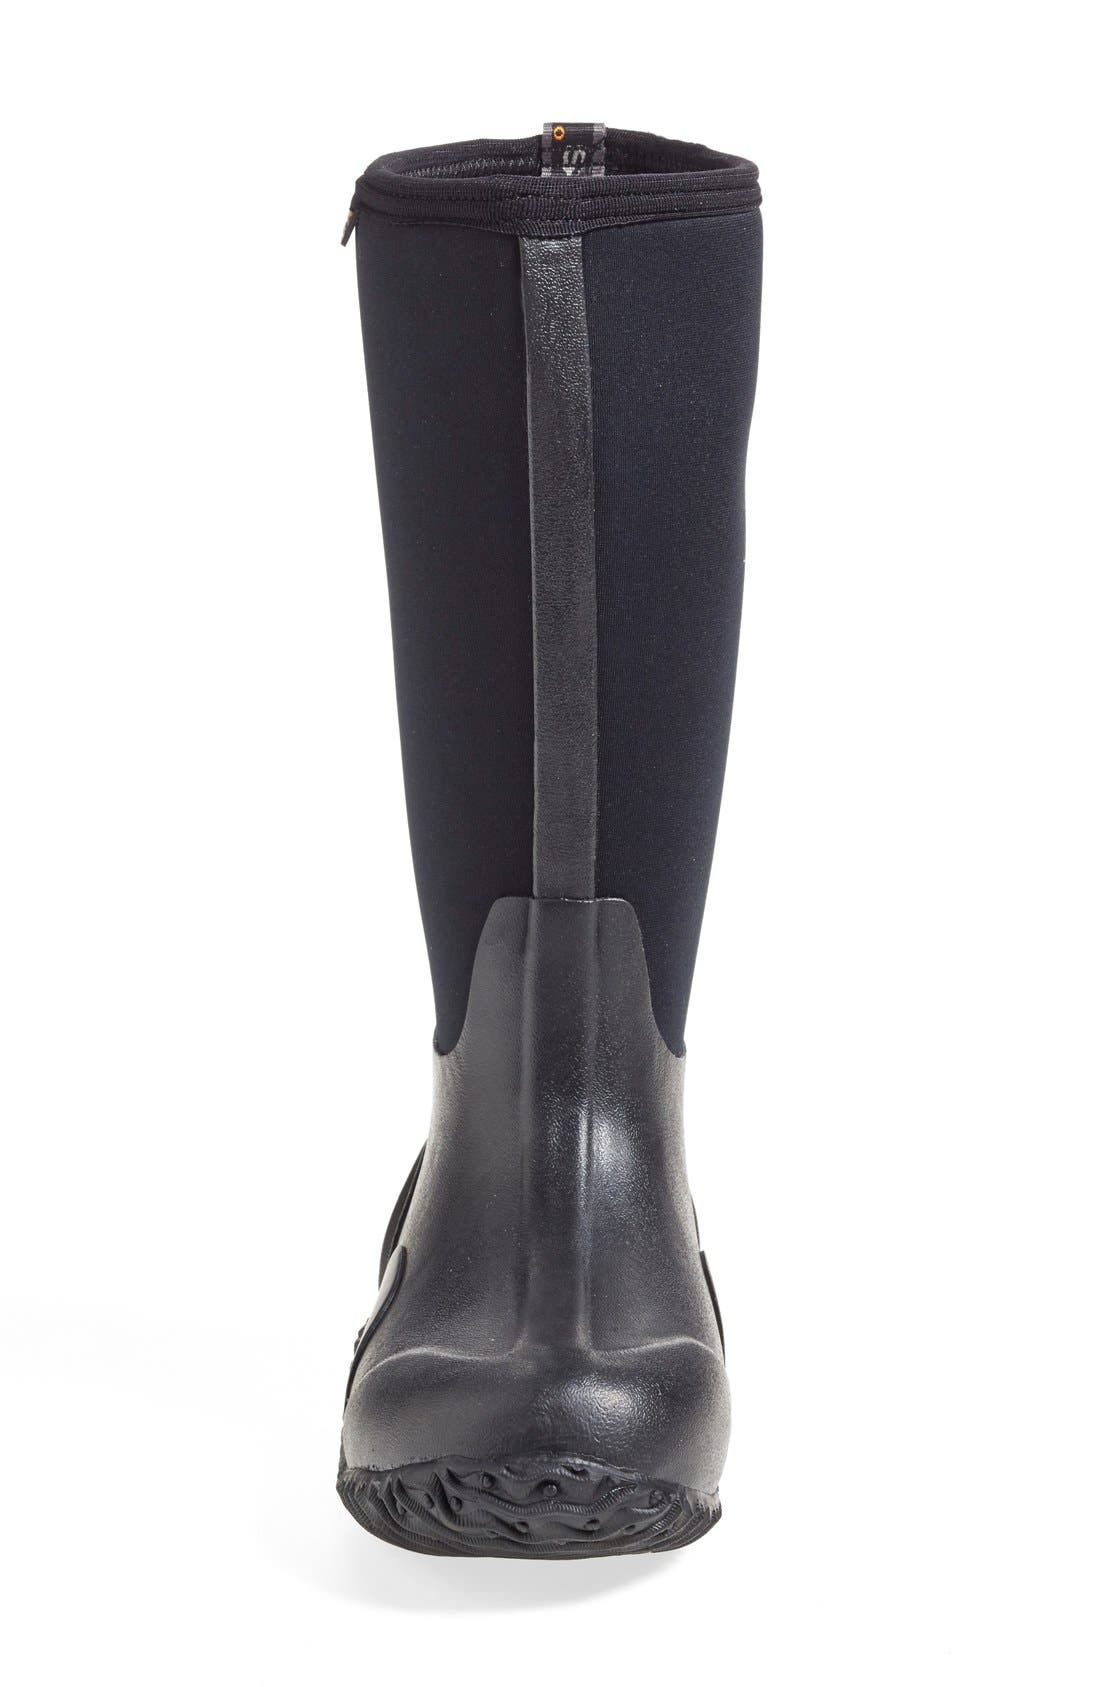 Alternate Image 3  - Bogs 'Classic' High Waterproof Snow Boot (Women)